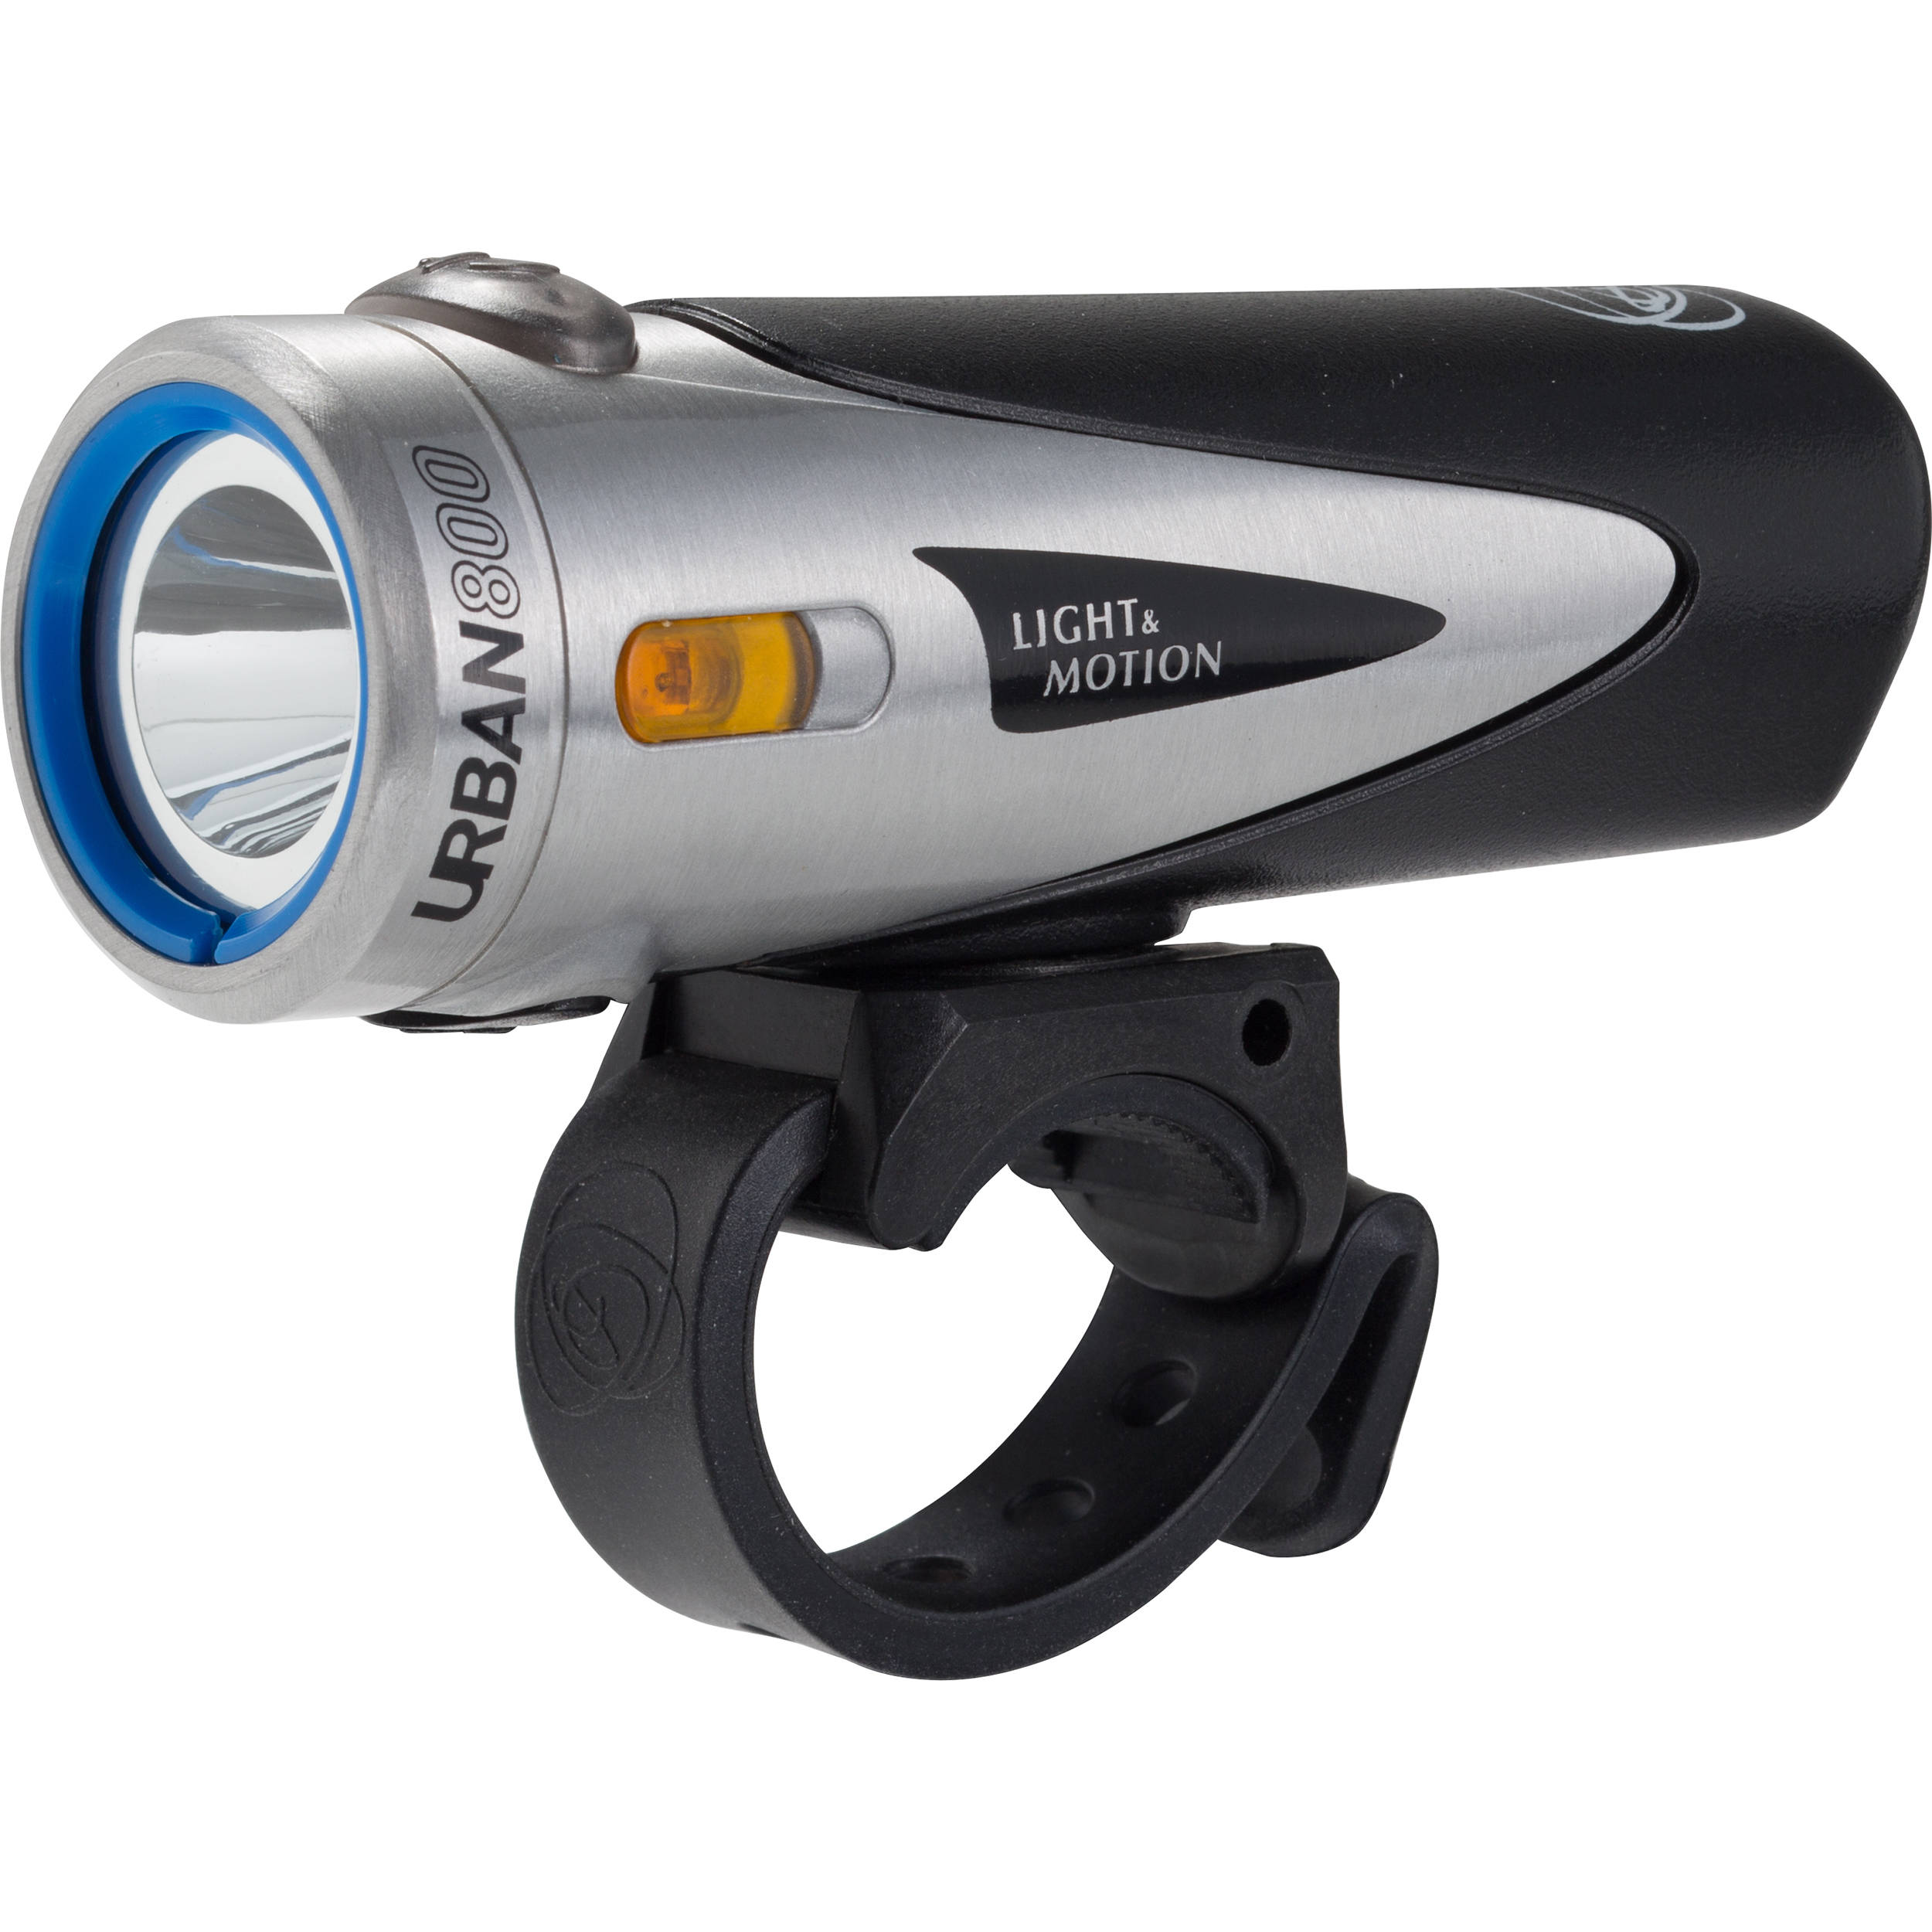 light and motion urban 800 review